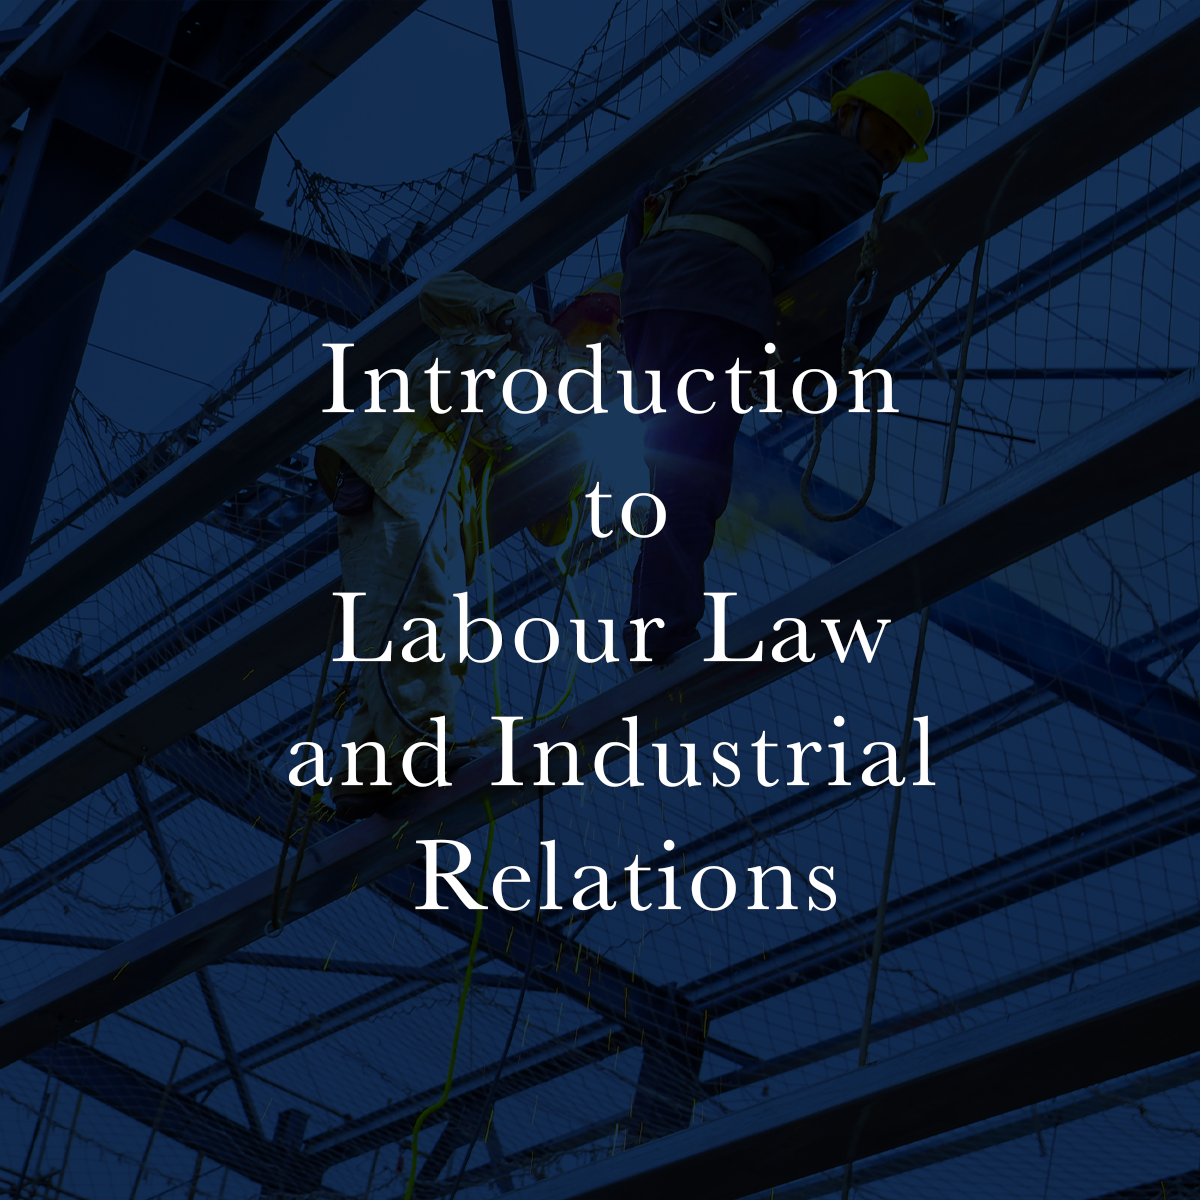 Introduction to Labour Law and Industrial Relations